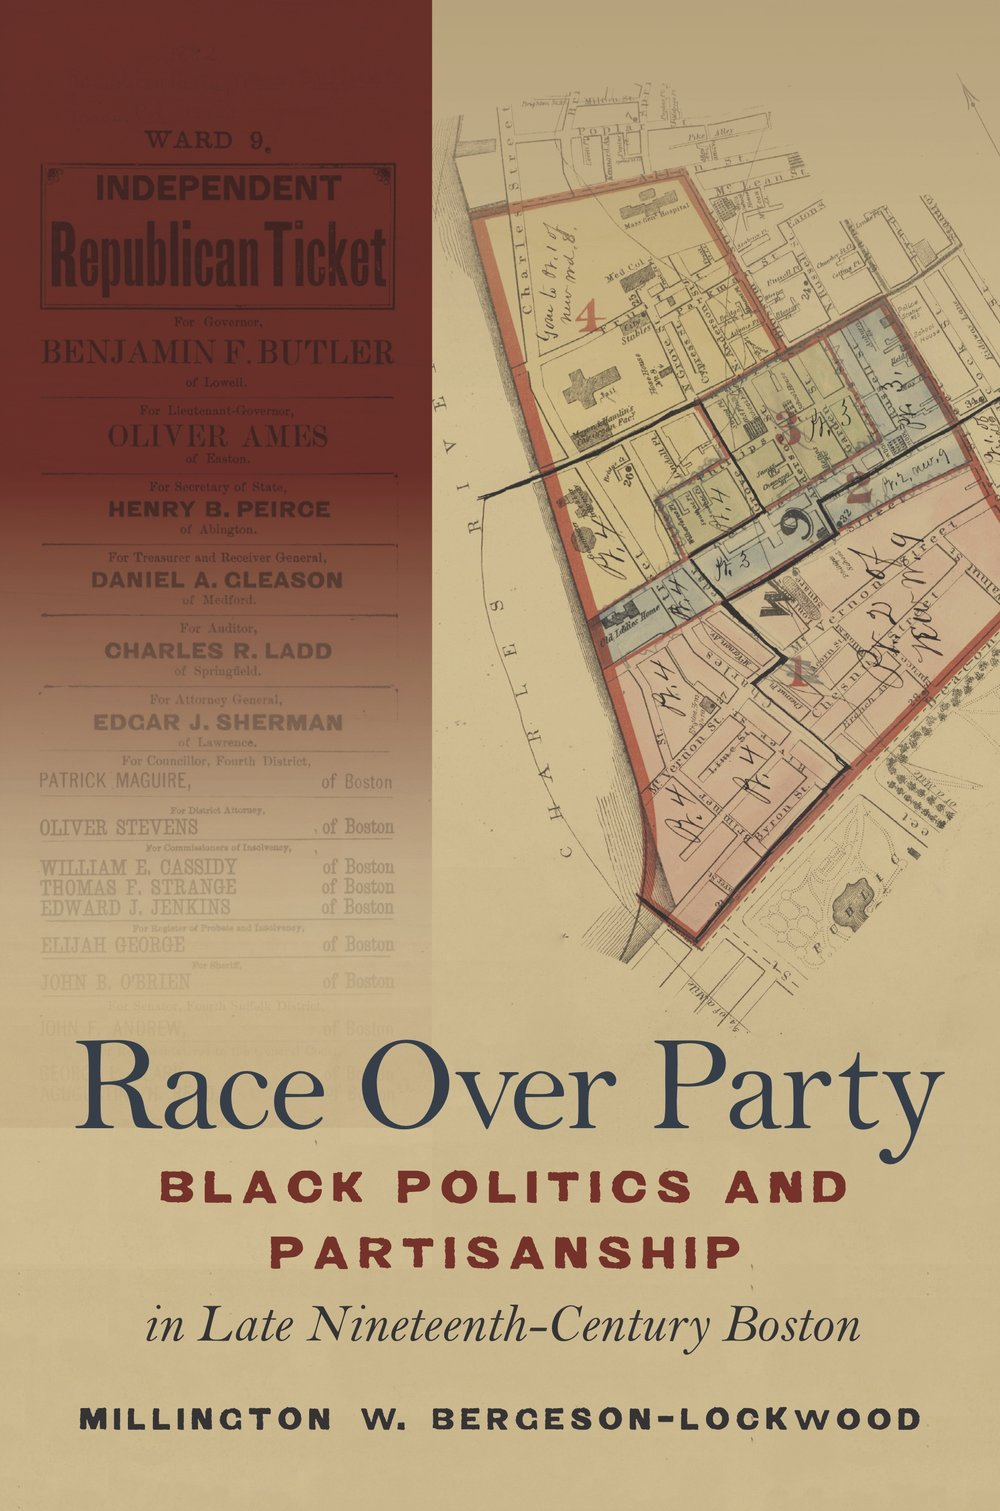 "Race Over Party - In late nineteenth-century Boston, battles over black party loyalty were fights over the place of African Americans in the post–Civil War nation. In his fresh in-depth study of black partisanship and politics, Millington W. Bergeson-Lockwood demonstrates that party politics became the terrain upon which black Bostonians tested the promise of equality in America's democracy. Most African Americans remained loyal Republicans, but Race Over Party highlights the actions and aspirations of a cadre of those who argued that the GOP took black votes for granted and offered little meaningful reward for black support. These activists branded themselves ""independents,"" forging new alliances and advocating support of whichever candidate would support black freedom regardless of party.By the end of the century, however, it became clear that partisan politics offered little hope for the protection of black rights and lives in the face of white supremacy and racial violence. Even so, Bergeson-Lockwood shows how black Bostonians' faith in self-reliance, political autonomy, and dedicated organizing inspired future generations of activists who would carry these legacies into the foundation of the twentieth-century civil rights movement."